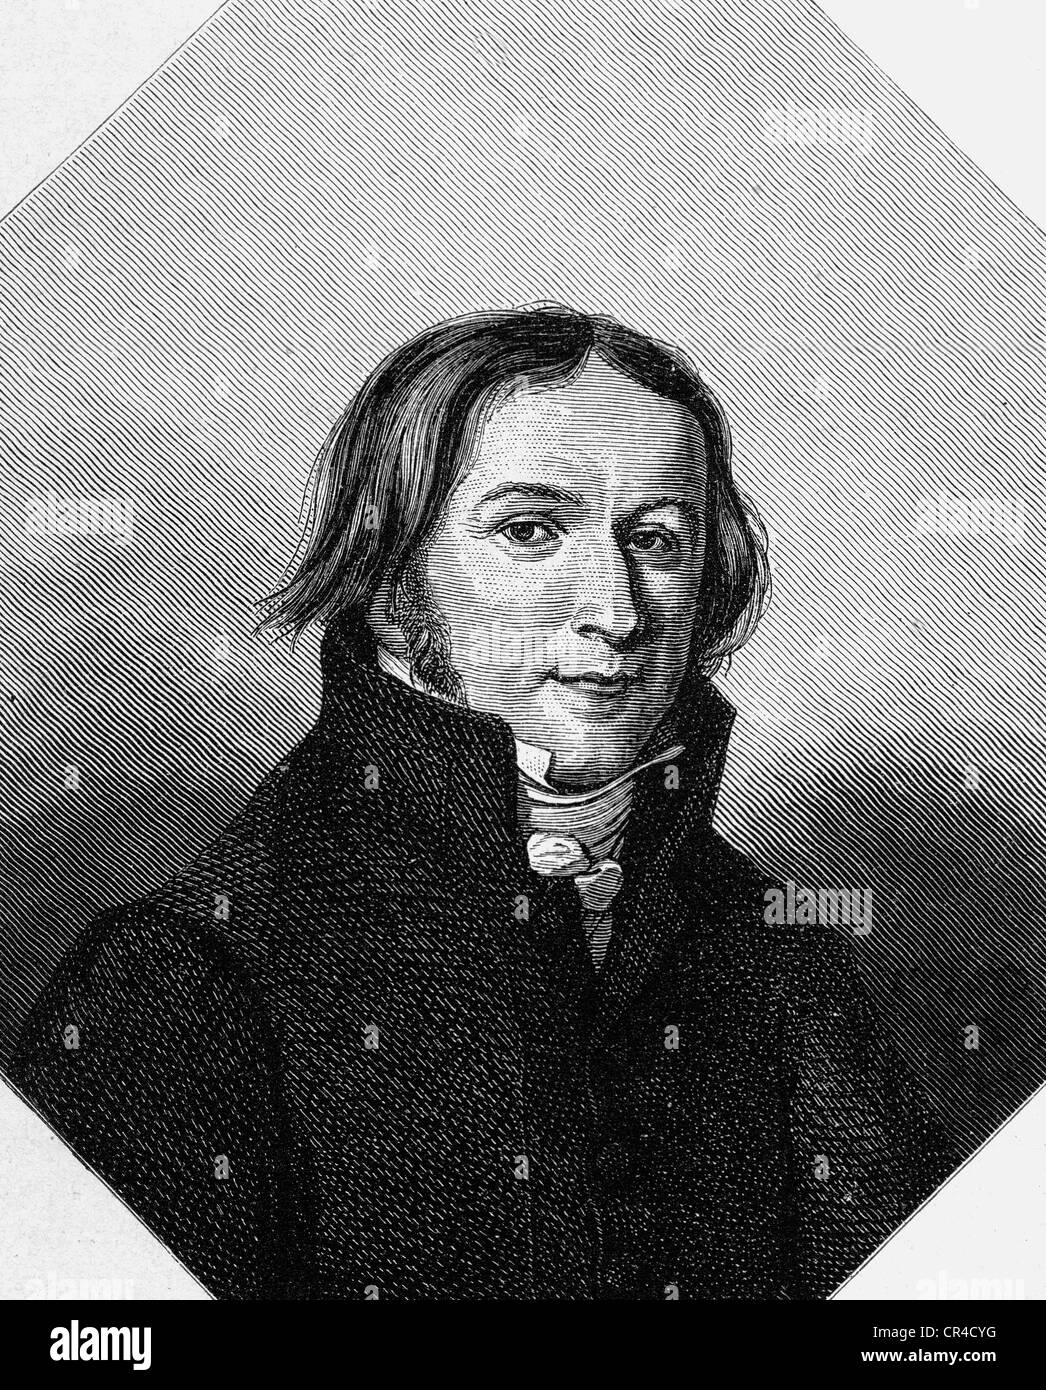 Ernst Moritz Arndt (1769-1860), poet, writer, after a drawing from 1817, steel engraving, before 1880 - Stock Image